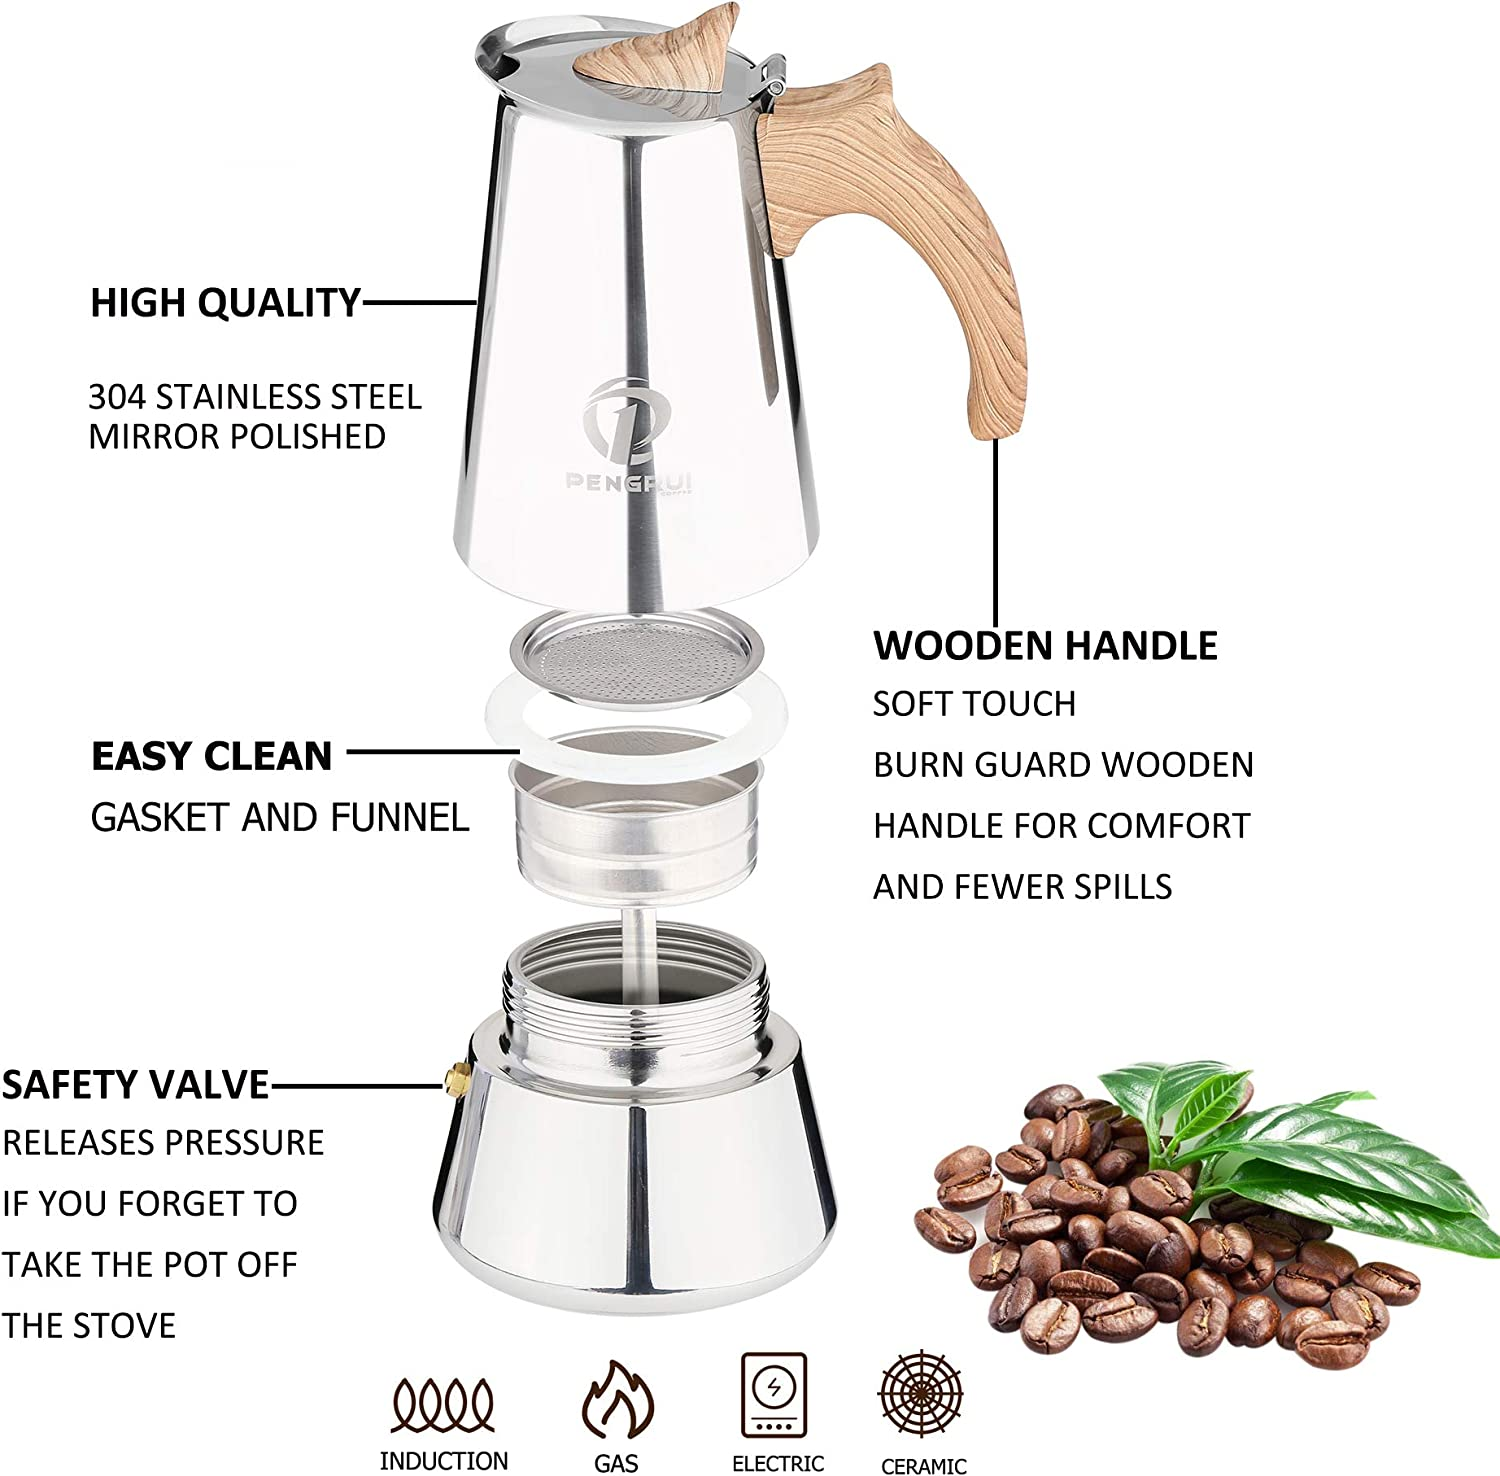 Pengrui Stainless Steel Stovetop Coffee Maker,6 Cup Moka Espresso Maker,Induction Suitable Italian Coffee Maker Percolator,Soft Touch Wooden Handle Moka Pot